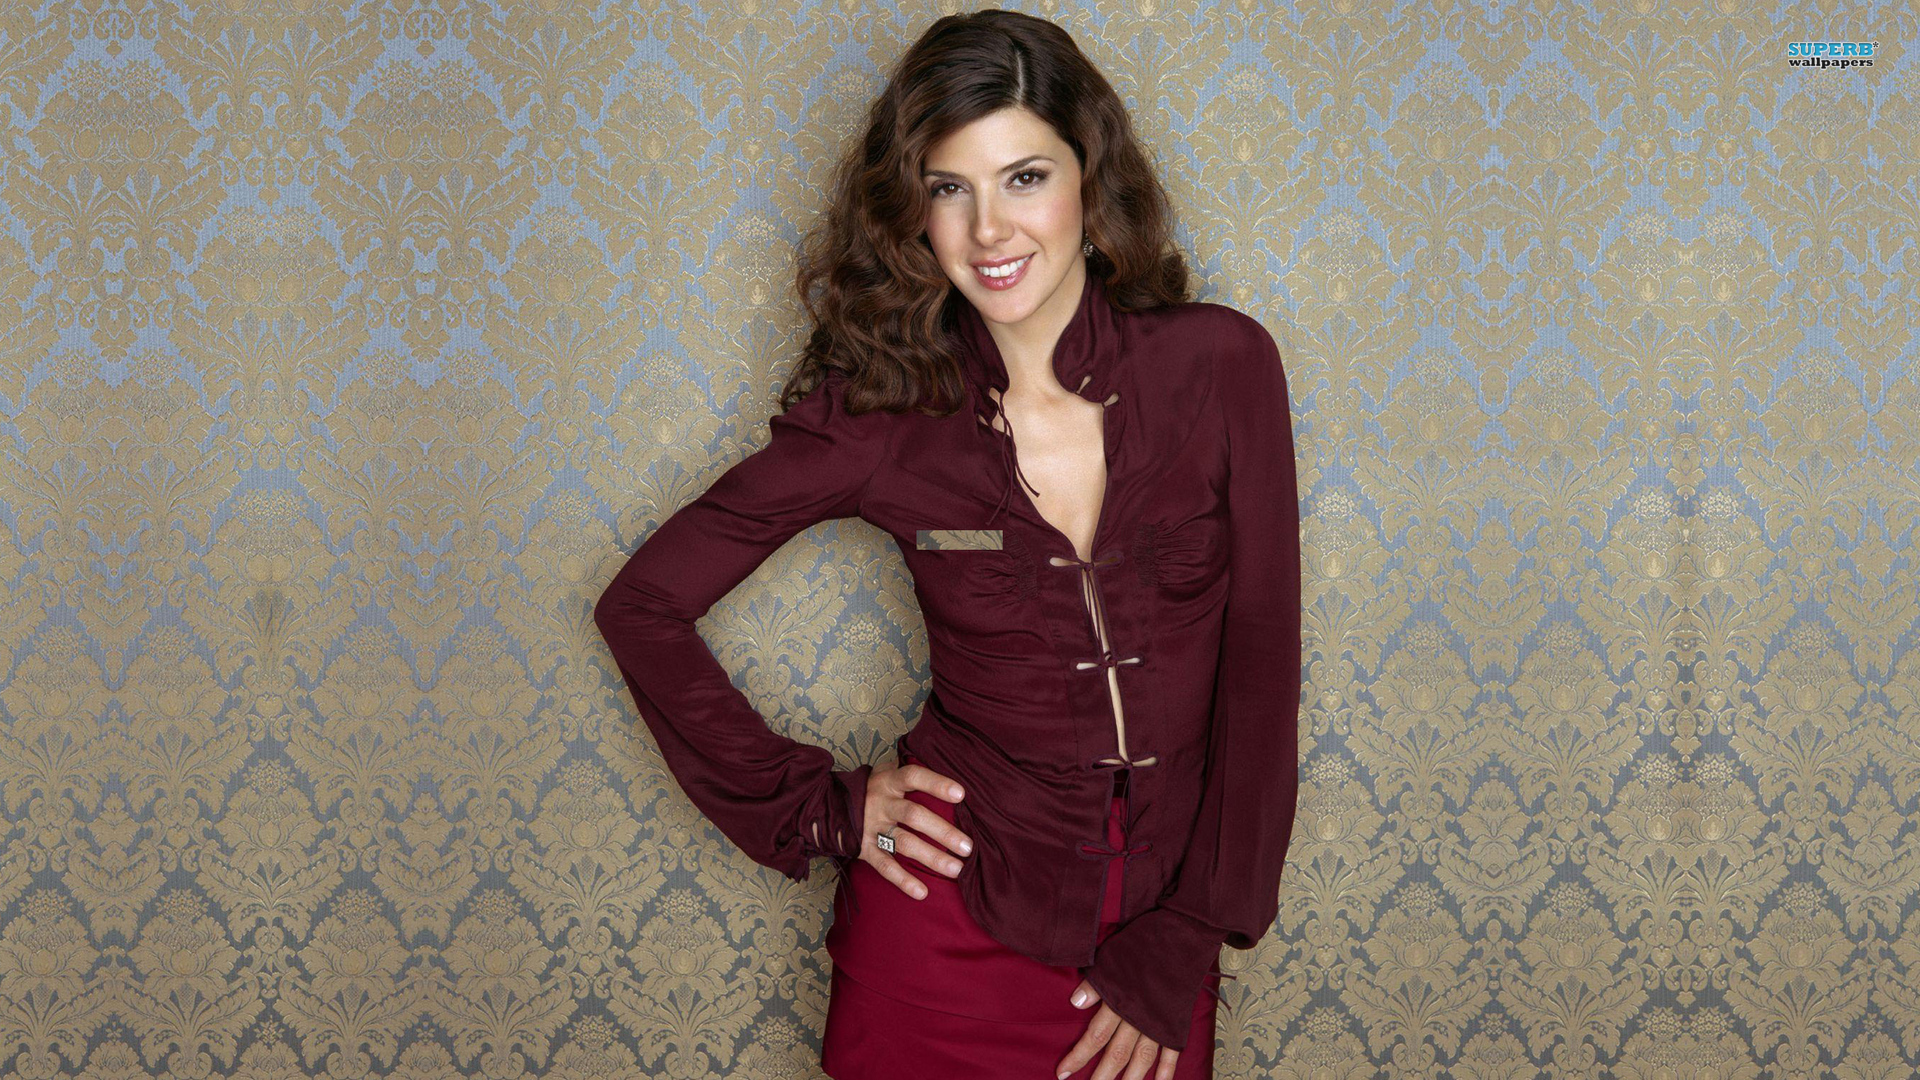 Marisa Tomei Wallpapers High Quality Download 1920x1080